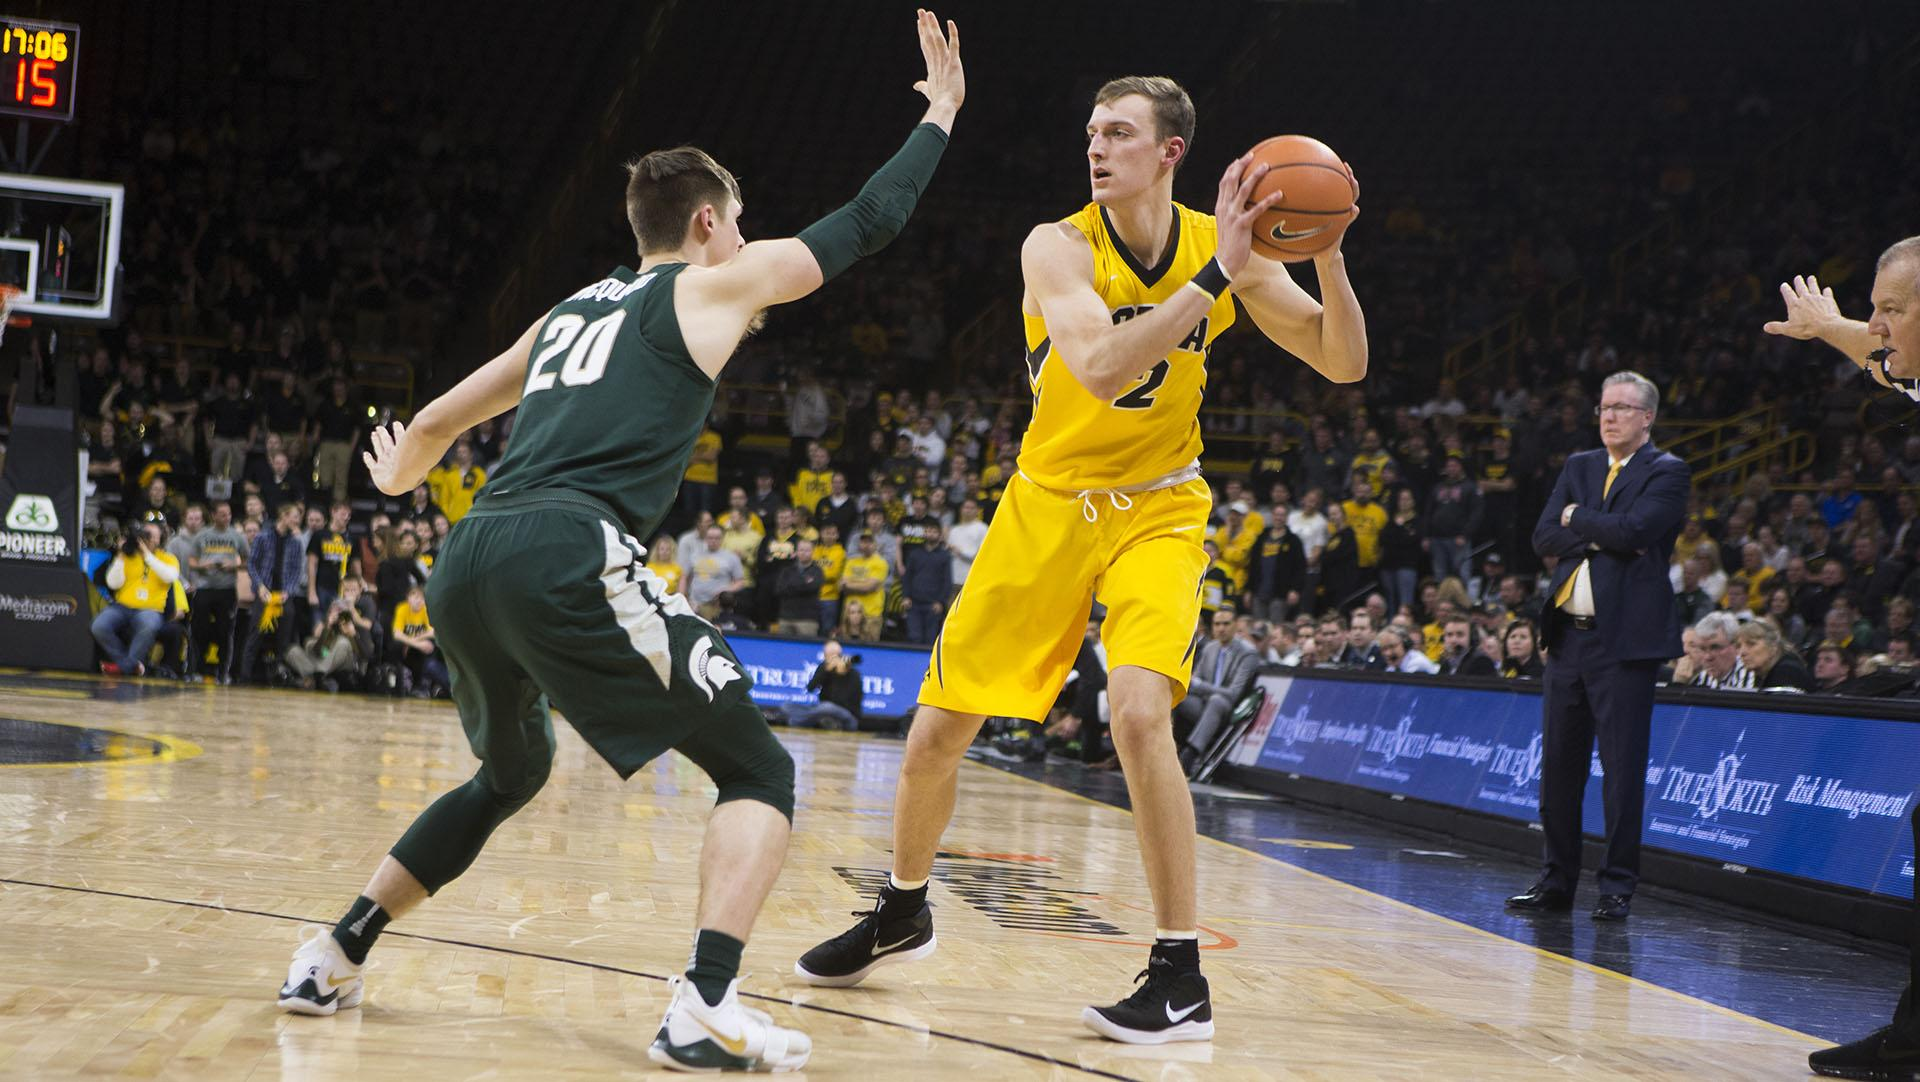 Iowa F Jack Nunge faces off with Michigan State G Matt McQuaid (20) during a basketball game between Iowa and Michigan State at Carver-Hawkeye Arena on Tuesday, Feb. 6, 2018. The Hawkeyes were defeated by the visiting Spartans, 96-93. (Shivansh Ahuja/The Daily Iowan)